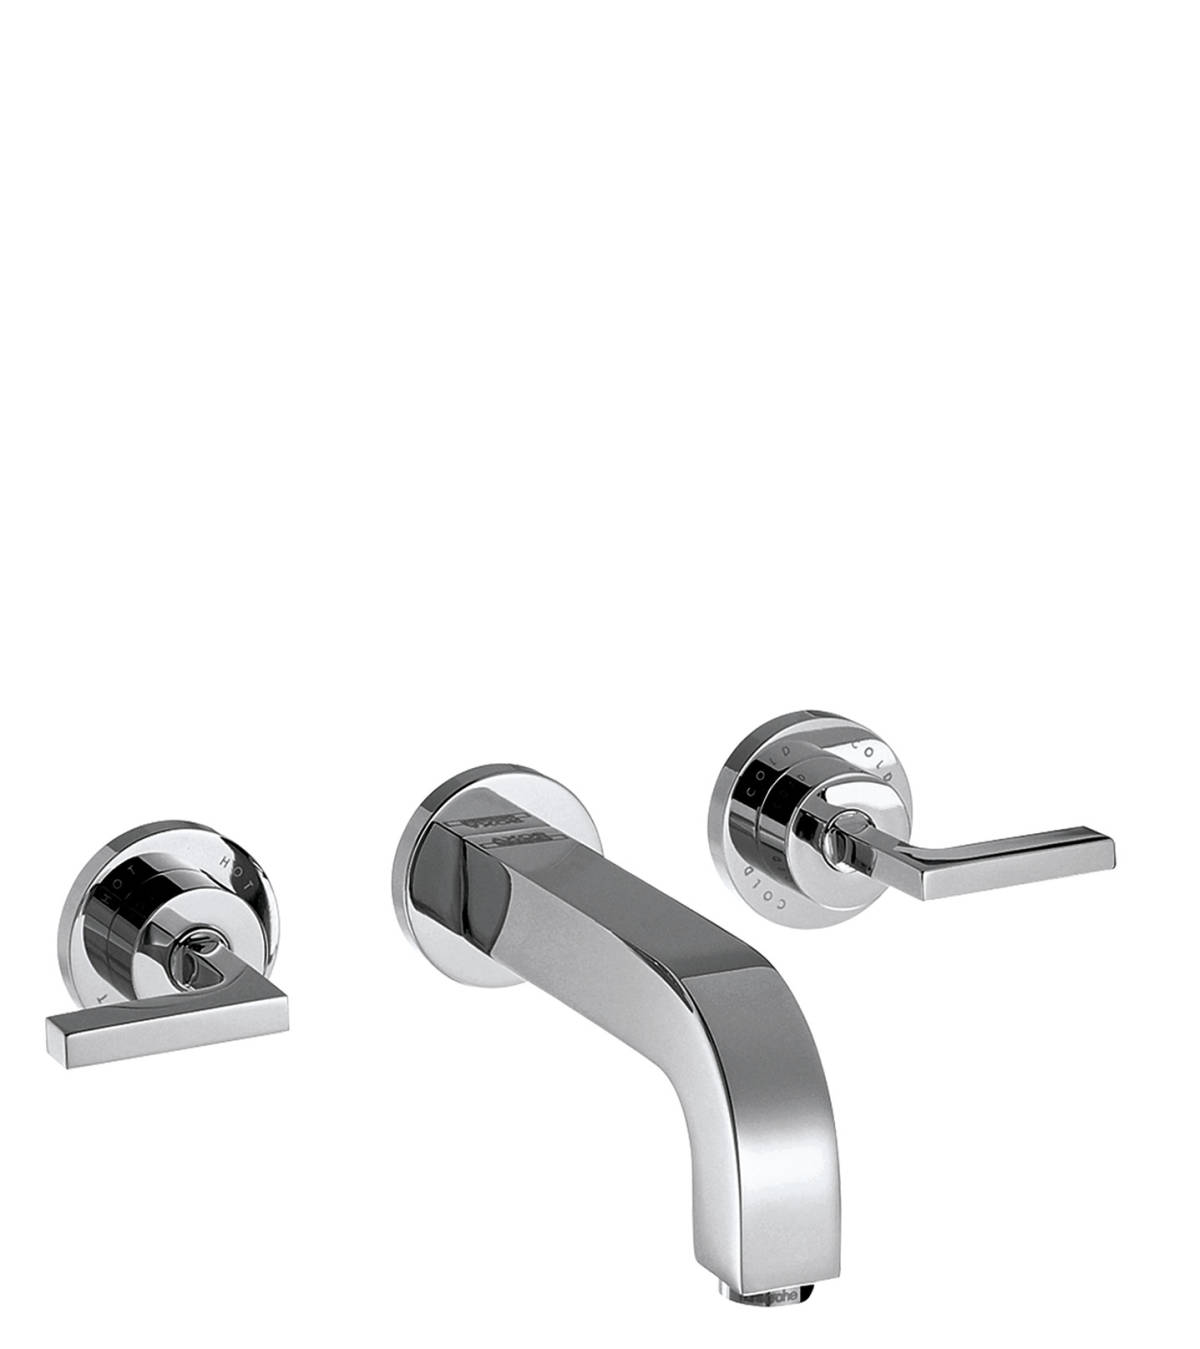 3-hole basin mixer for concealed installation wall-mounted with spout 162 mm, lever handles and escutcheons, Chrome, 39315000